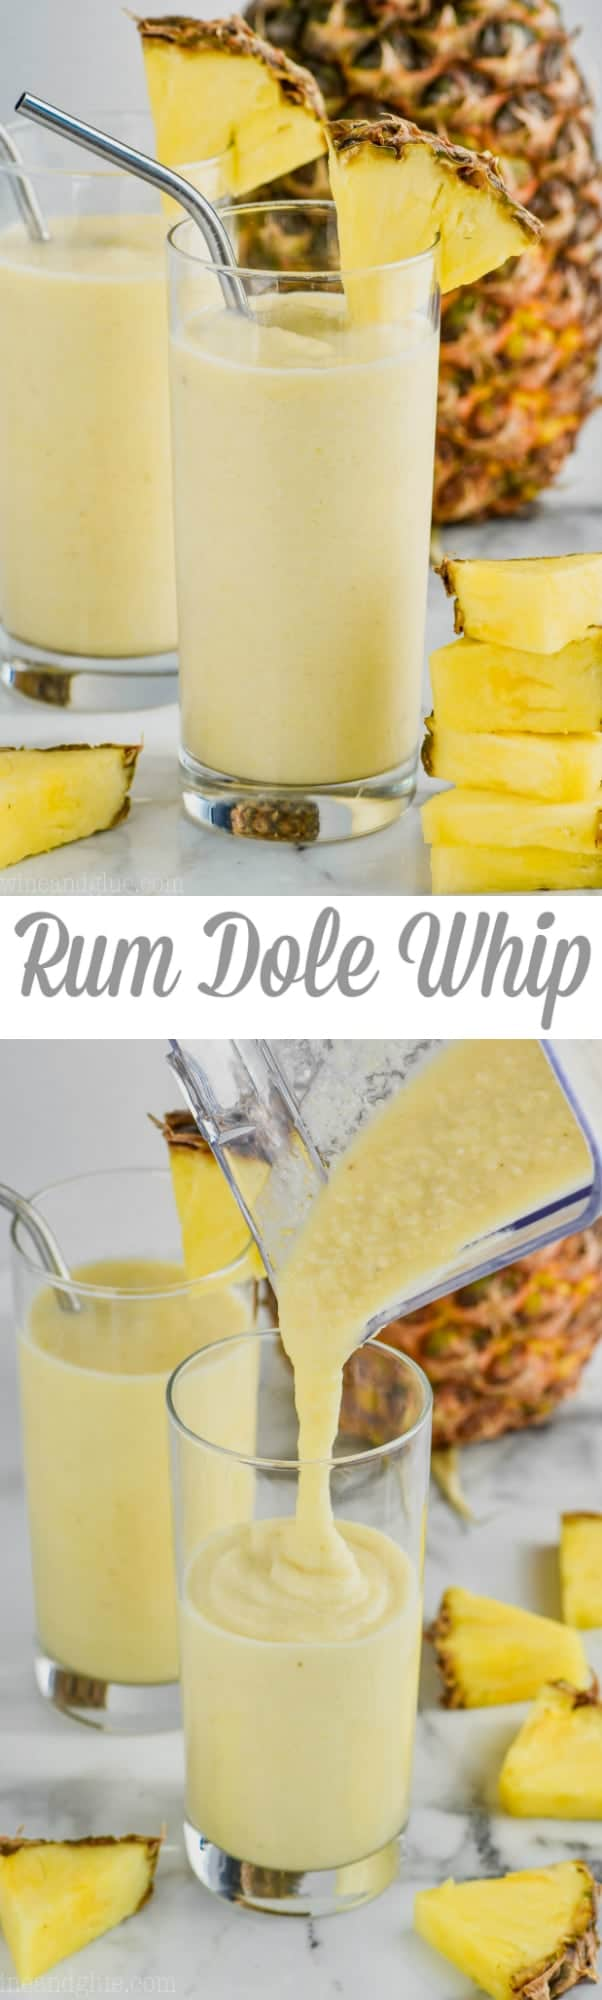 pouring dole whip float into a tall glass